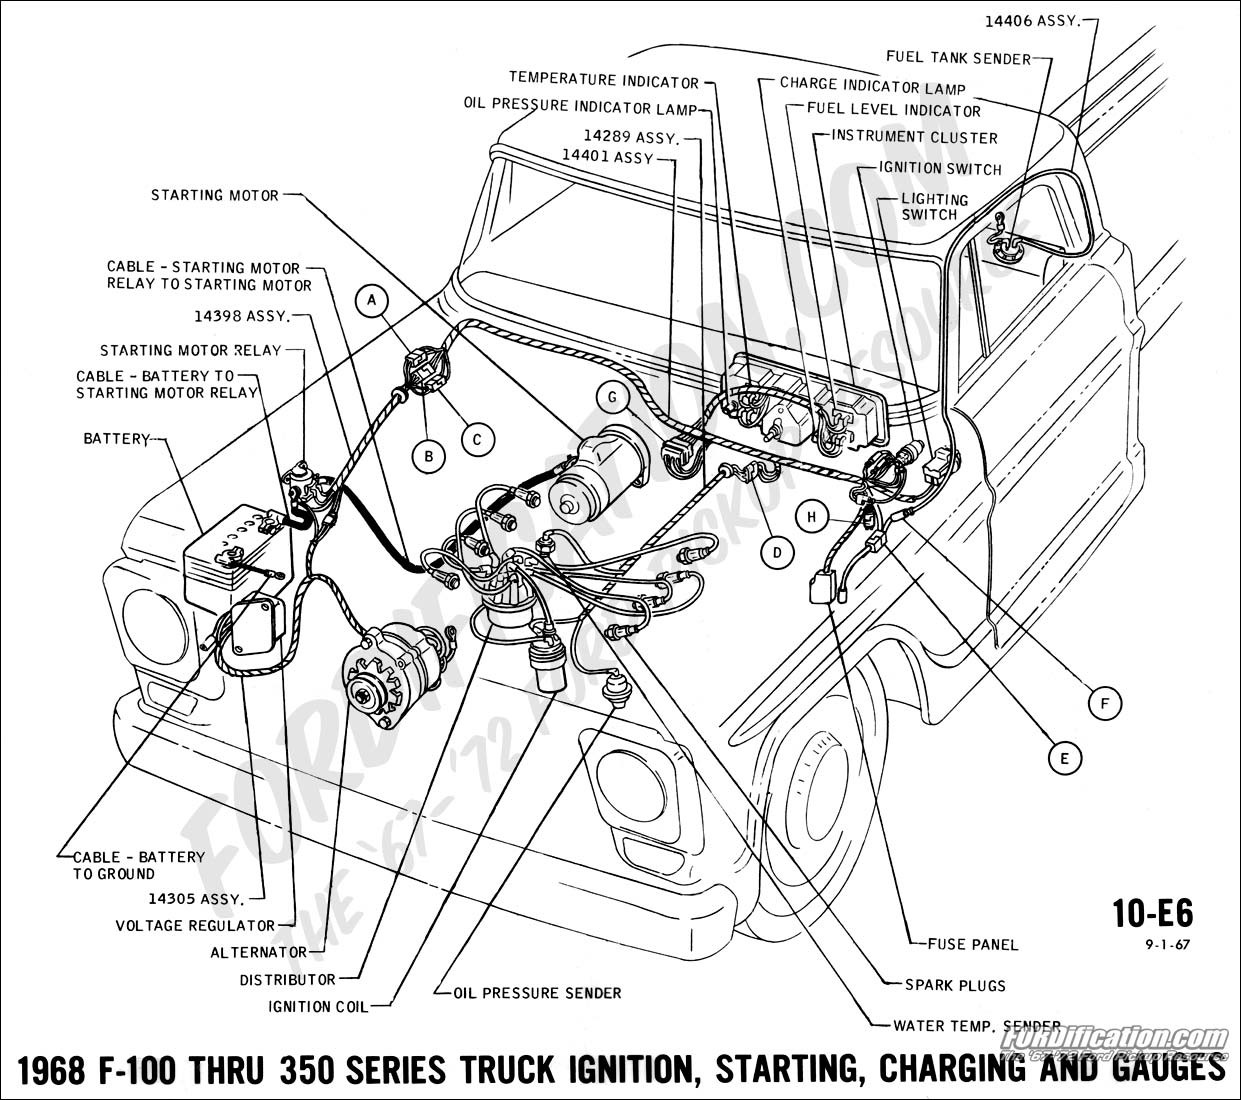 1970 C10 Chevy Truck Wiring Diagram 67 72 1991 Ford Probe Fuse Box Diagram 1990 300zx Pas Sayange Jeanjaures37 Fr